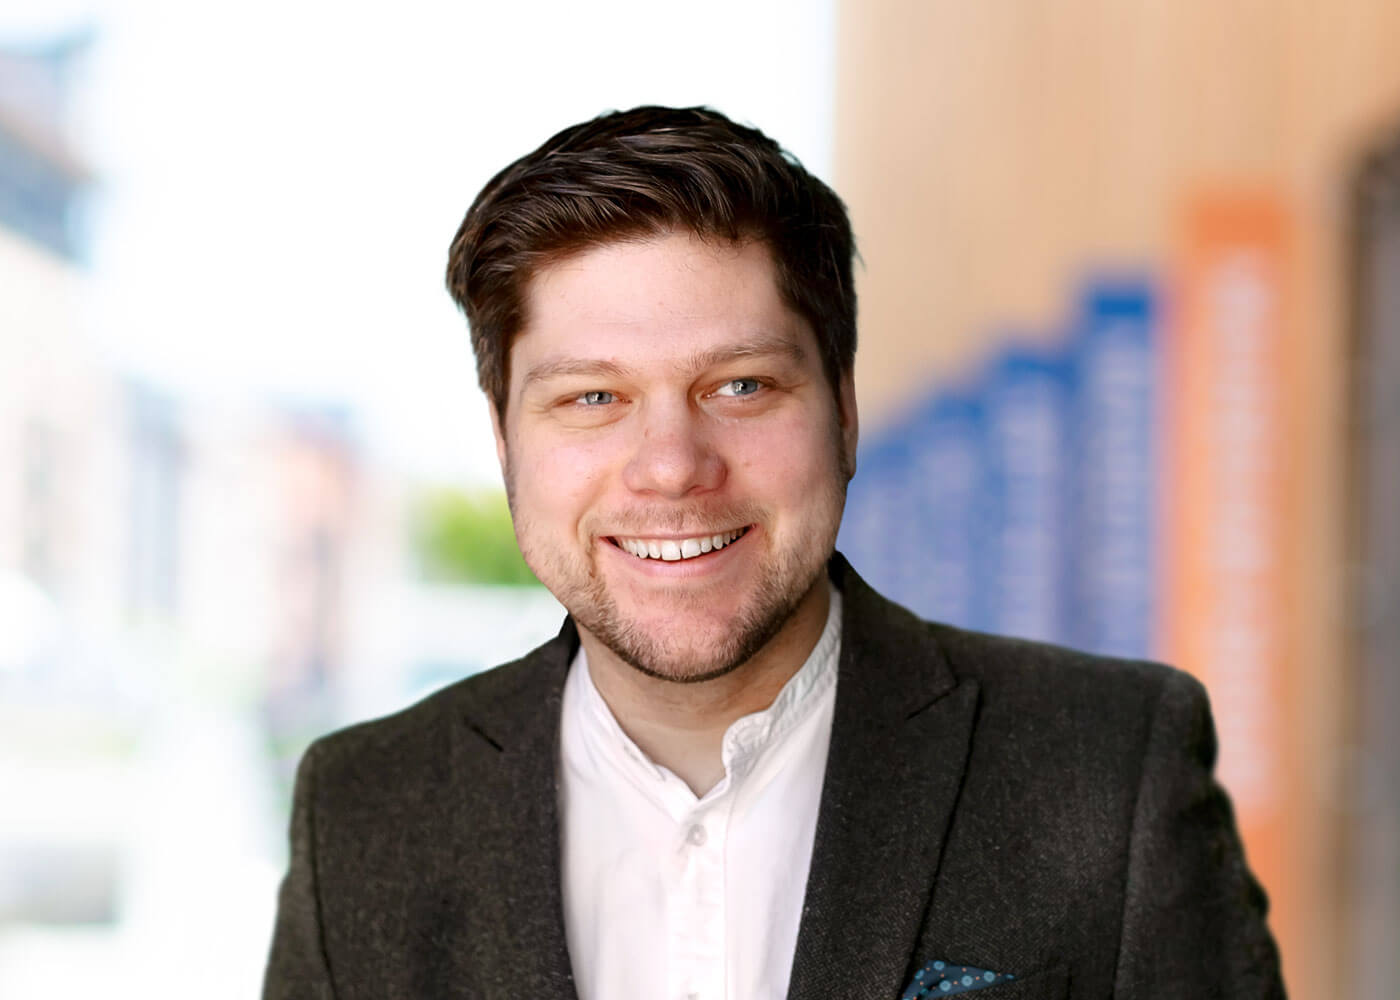 Edgars Knohenfelds, Product Owner, Business Process and PMO